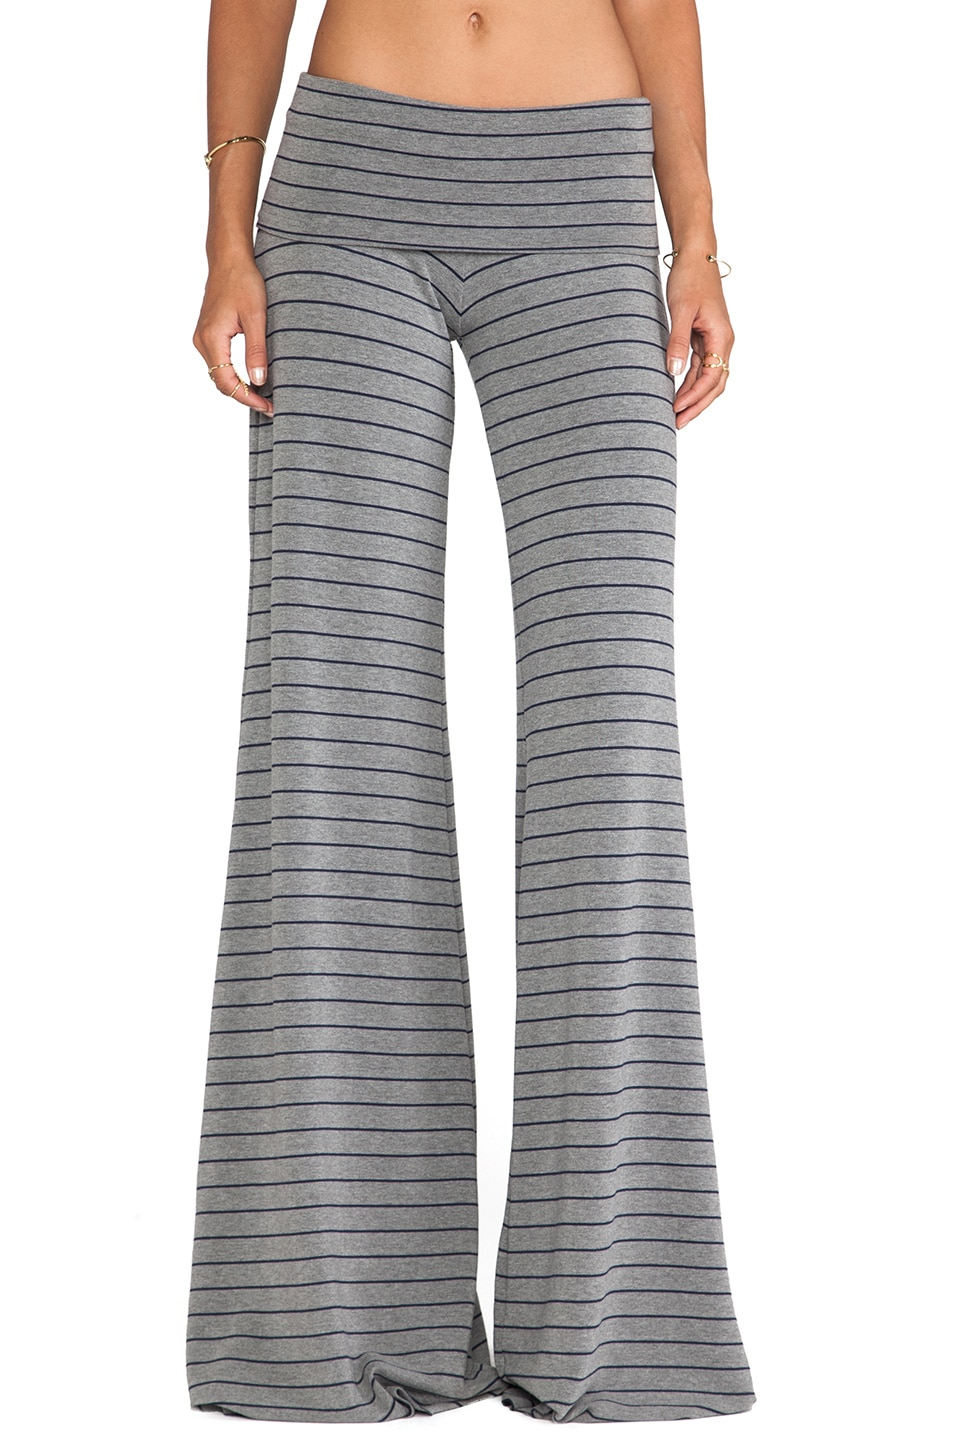 Saint Grace Carol Pant in Heather/Liberty